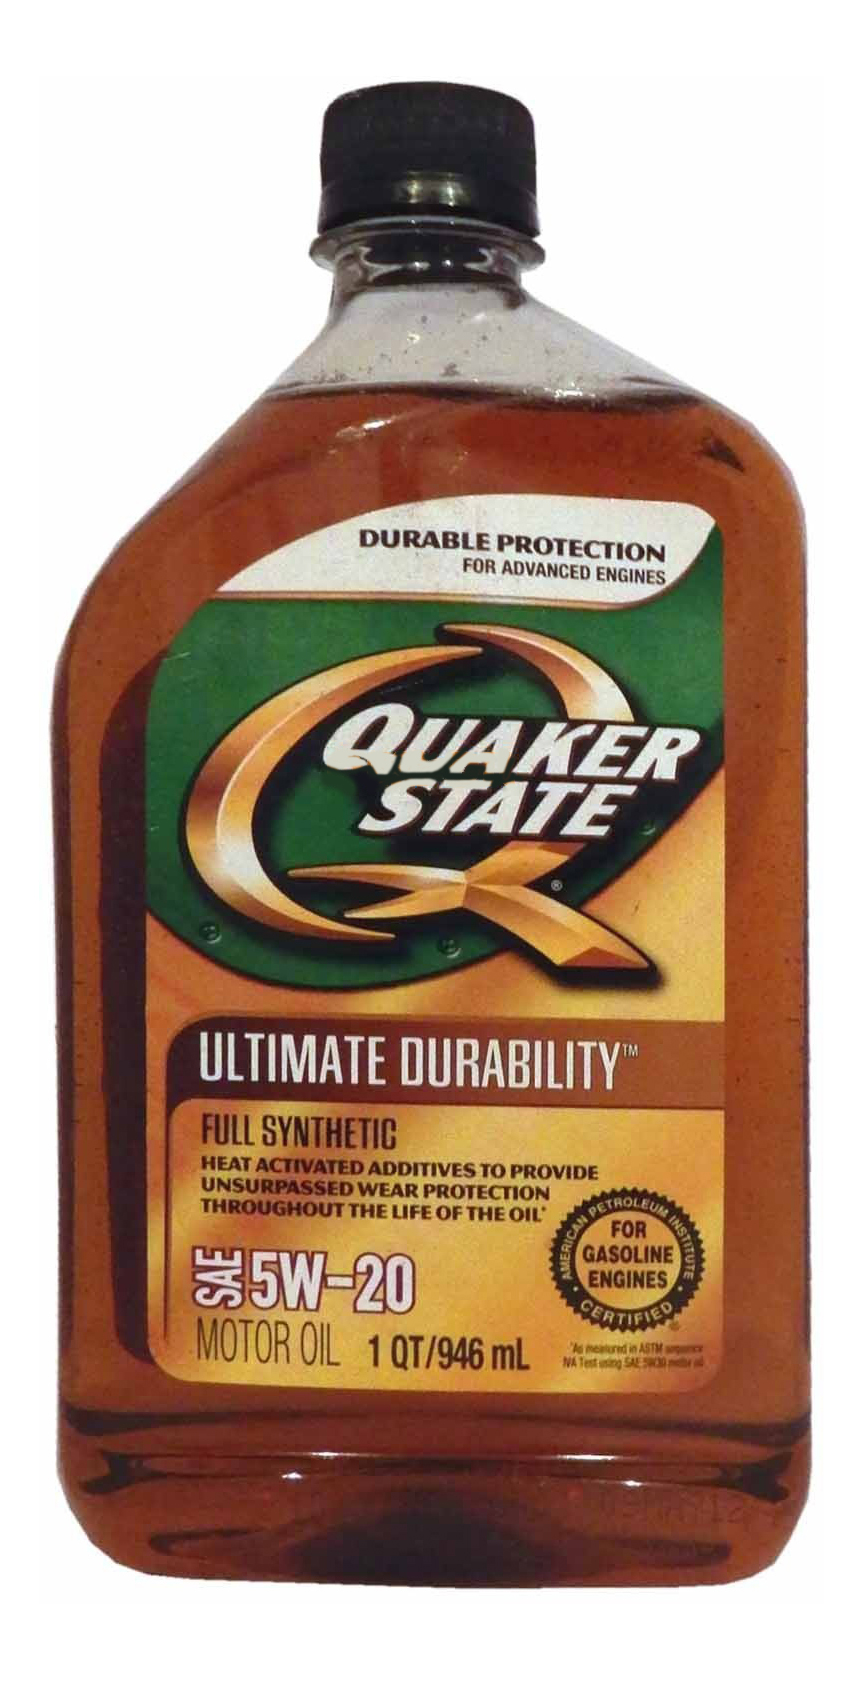 Quaker State Ultimate Durability SAE 5W-20 Full Synthetic Motor Oil